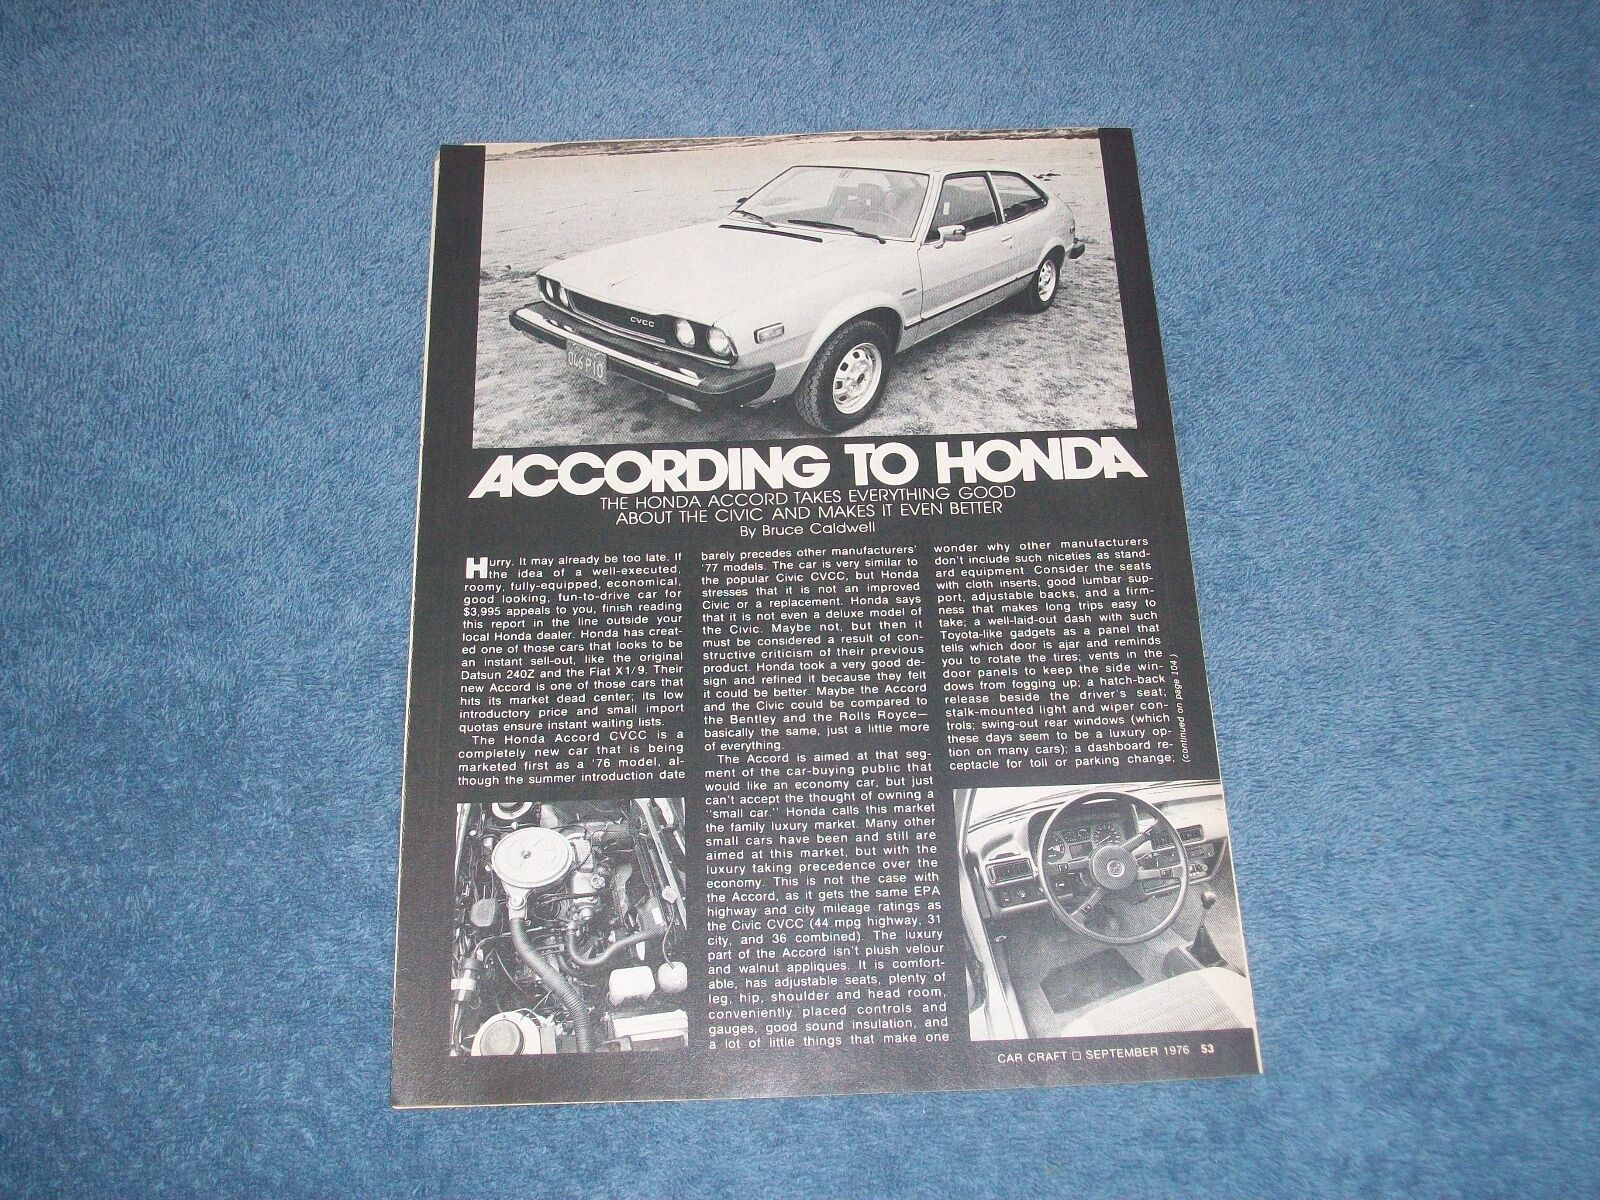 1977 Honda Accord Vintage Info Article According To Civic 1970 Cvcc 1 Of 1only Available See More